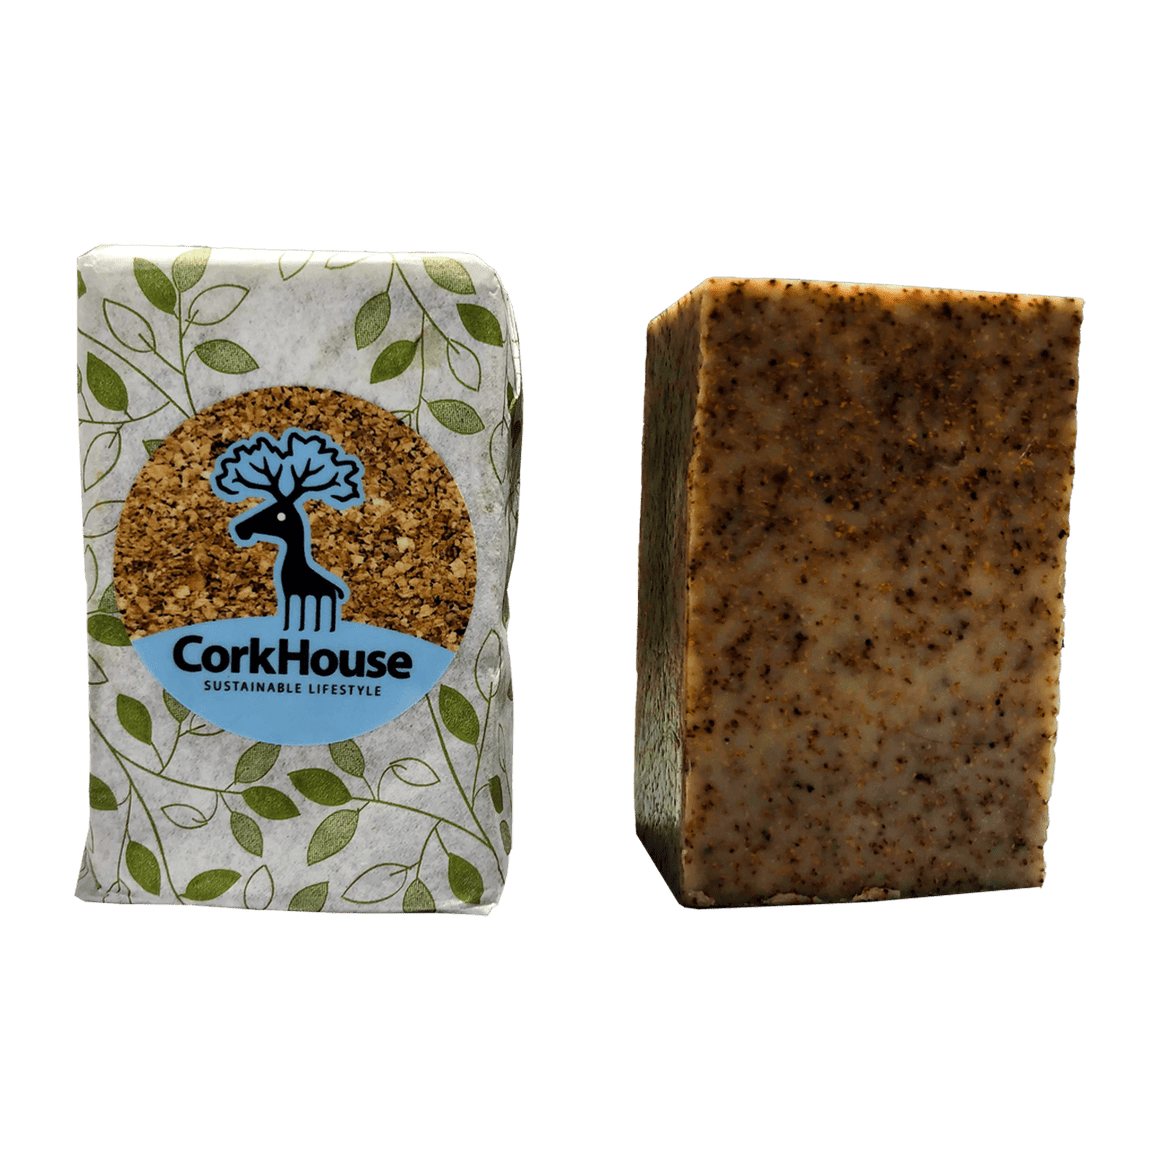 CorkHouse CorkHouse Bar Soap - Basil & Lemongrass